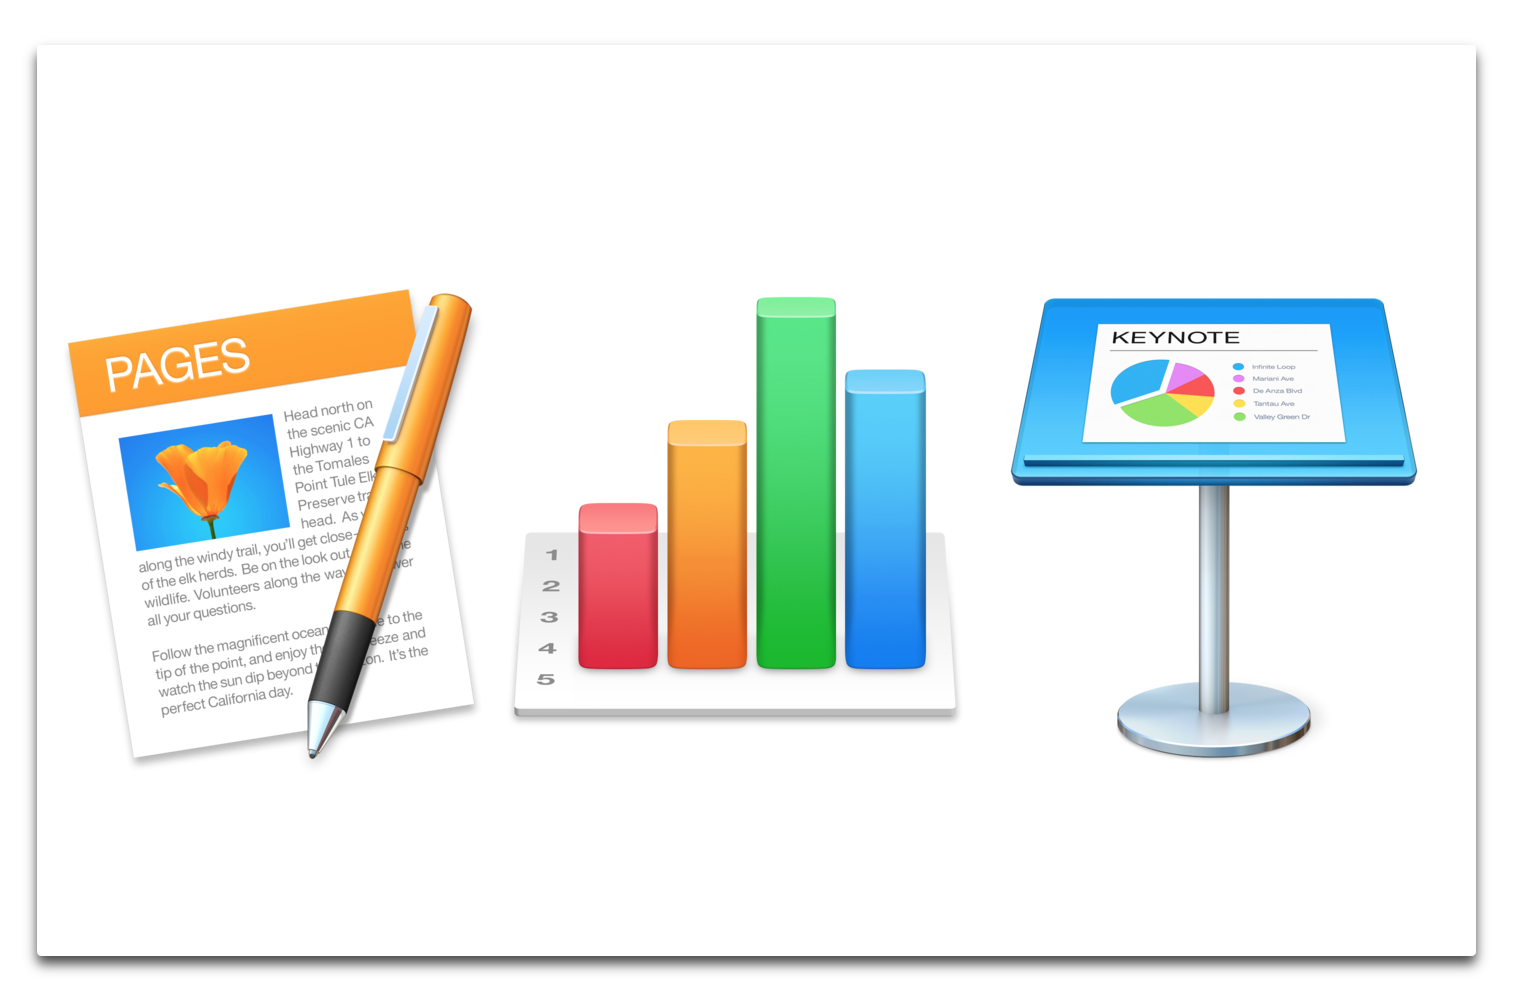 【Mac】Apple、「Pages 10.2」「Numbers 10.2」「Keynotes 10.2」をリリース